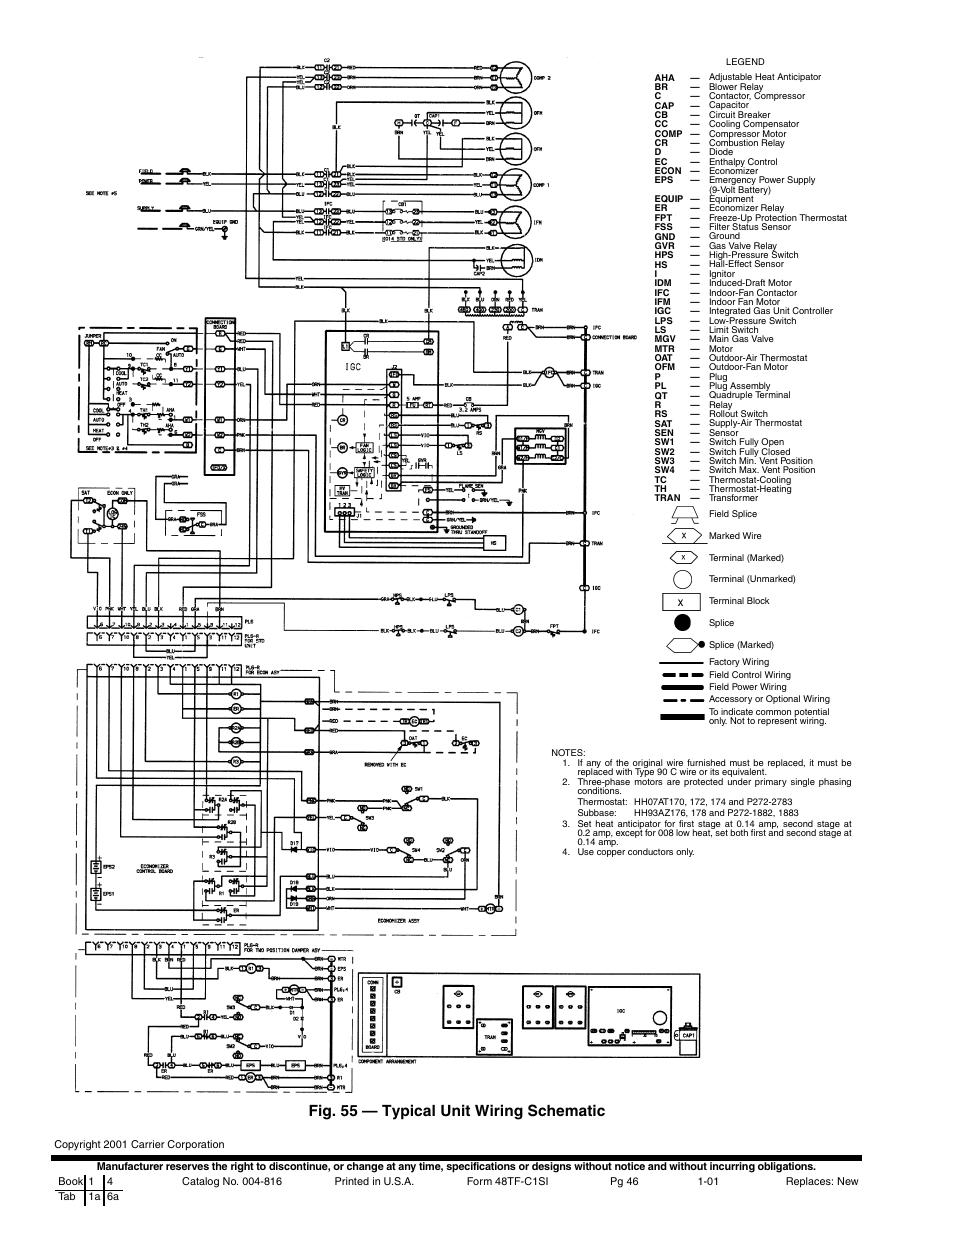 Carrier 48 Series Economizer Wiring Diagram : 43 Wiring